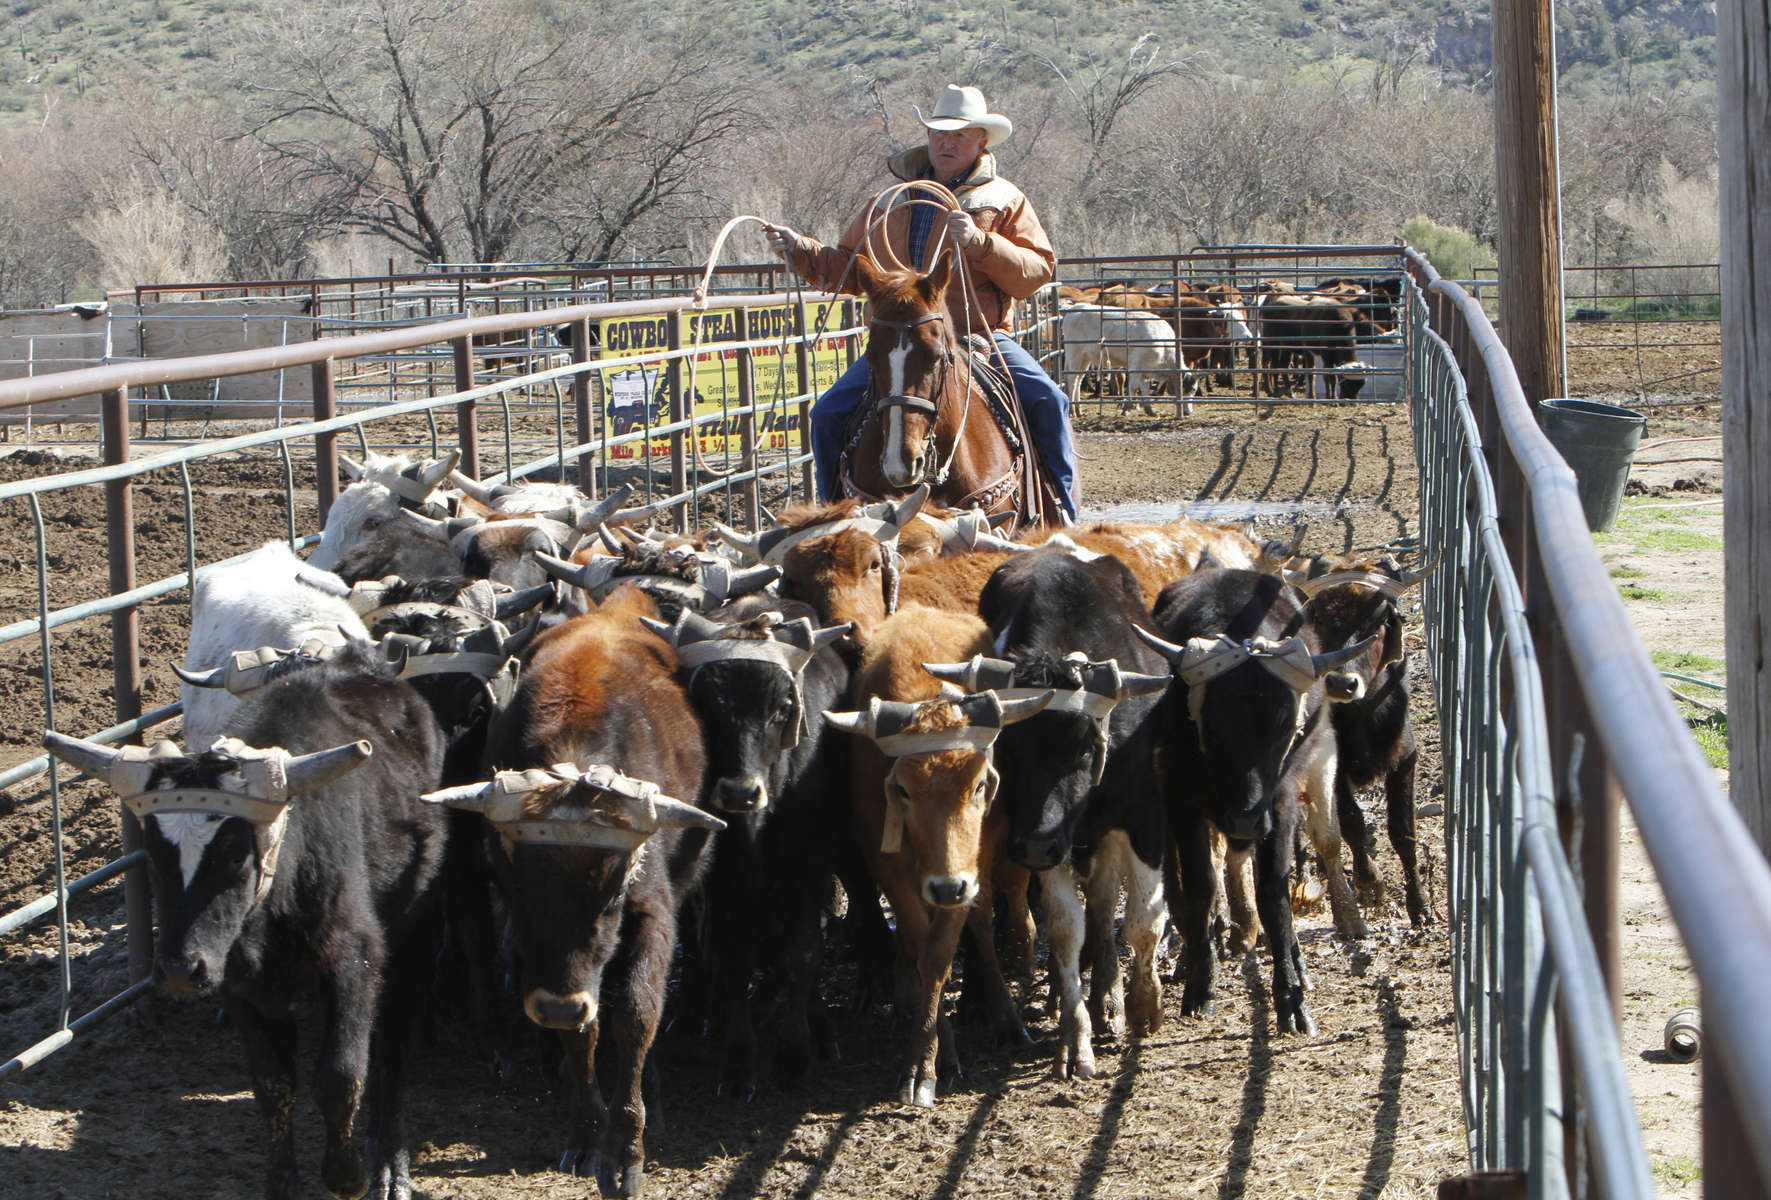 A cowboy herds the cows as team roping competitors prepare to compete at Horse World Arena located at Rincon Road and US93 in Wickenburg, Arizona on Frebruary 23, 2010